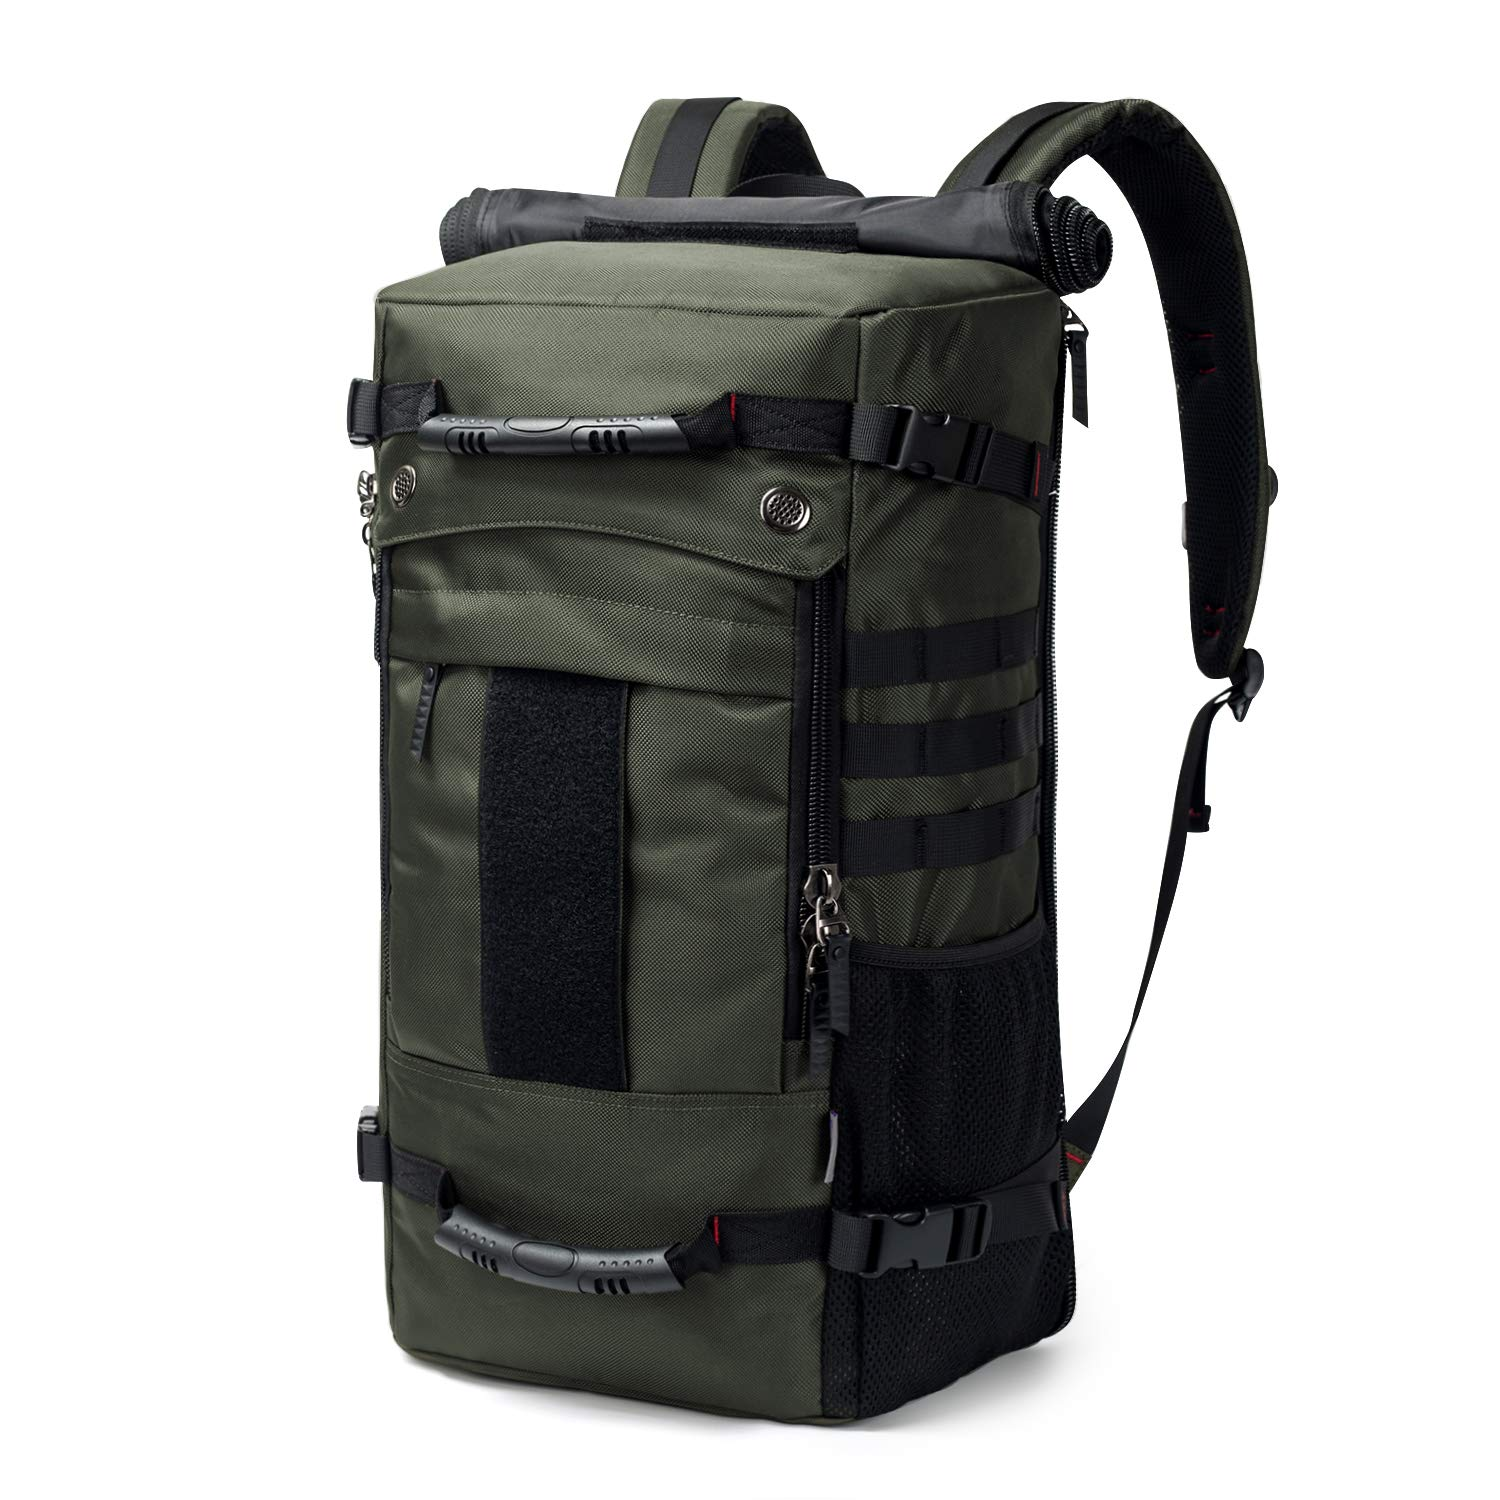 Mardingtop 40L Duffle Backpack Molle Travel Sports Gym Carry-On Bag for Men Women